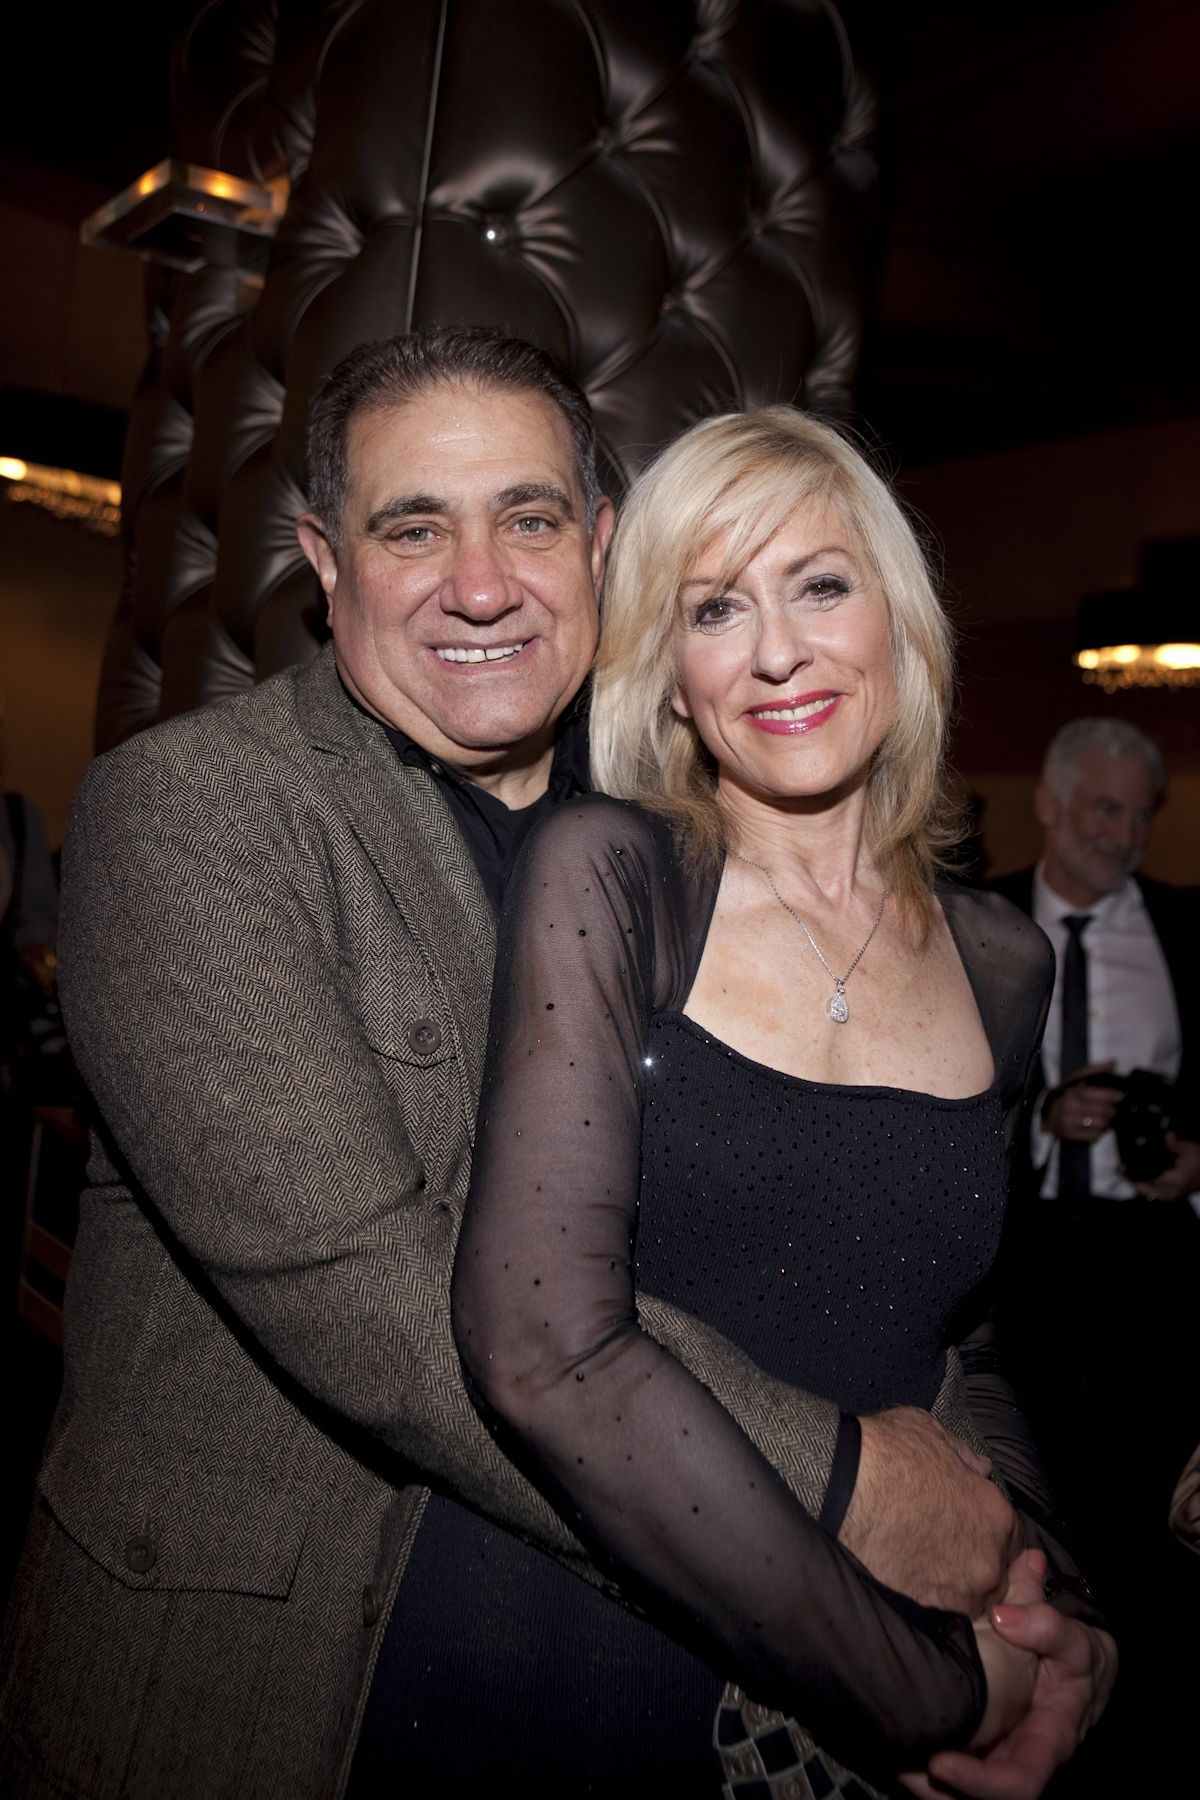 <div class='photo-info'><span class='counter'>1 of 18</span>Posted Oct 26, 2010</div><div class='photo-title'>Dan Lauria &amp; Judith Light</div><div class='photo-body'>Dan Lauria (Vince Lombardi) & Judith Light (Marie Lombardi) at the post-party after the opening of LOMBARDI on broadway  credit lombardibroadway.com</div>